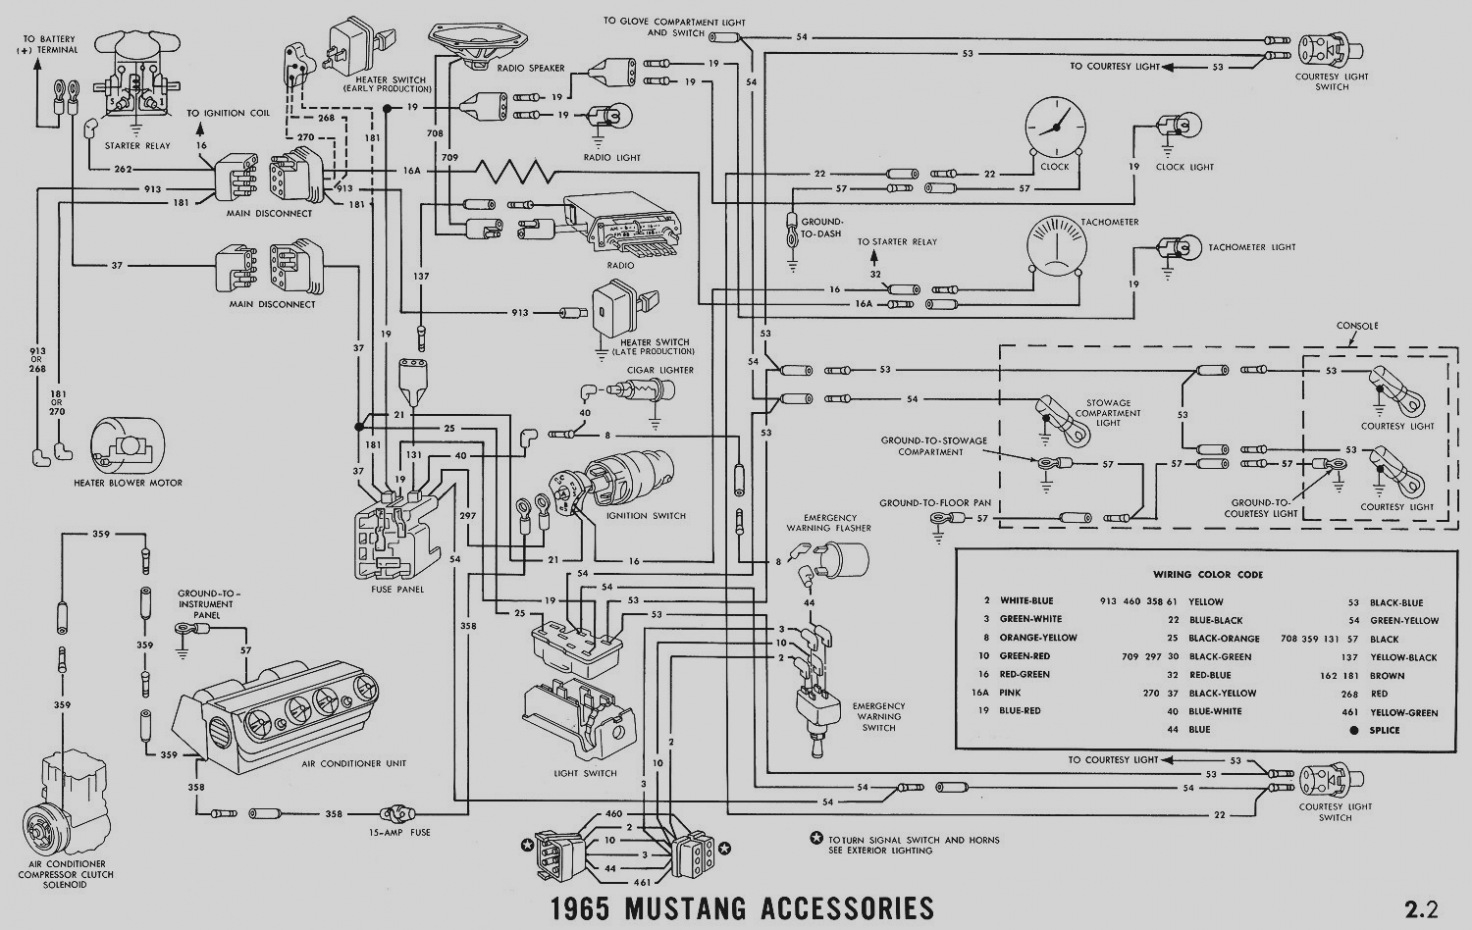 1965 Ford Mustang Wiring Diagram Gallery Sample Adt Download Diagrams Average Joe Restoration